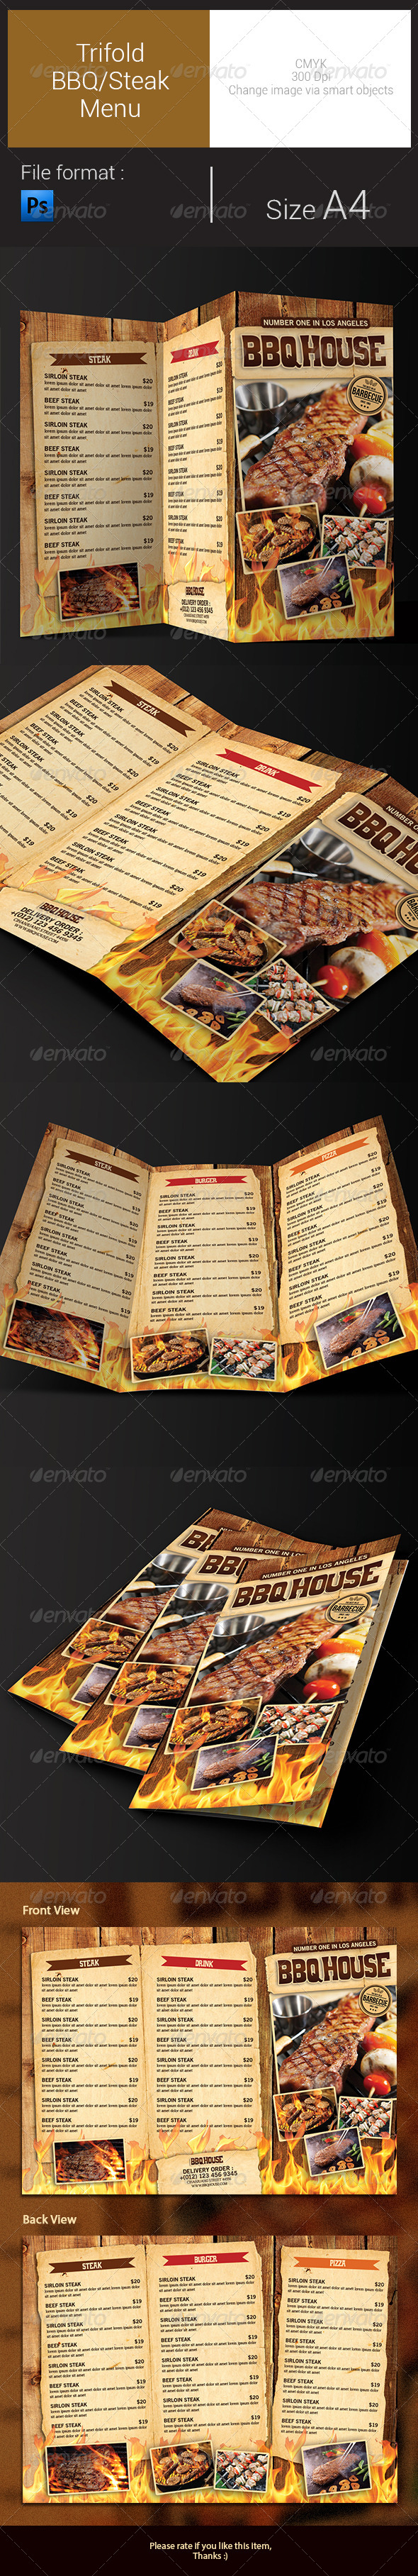 GraphicRiver Trifold BBQ Steak Menu 8585322